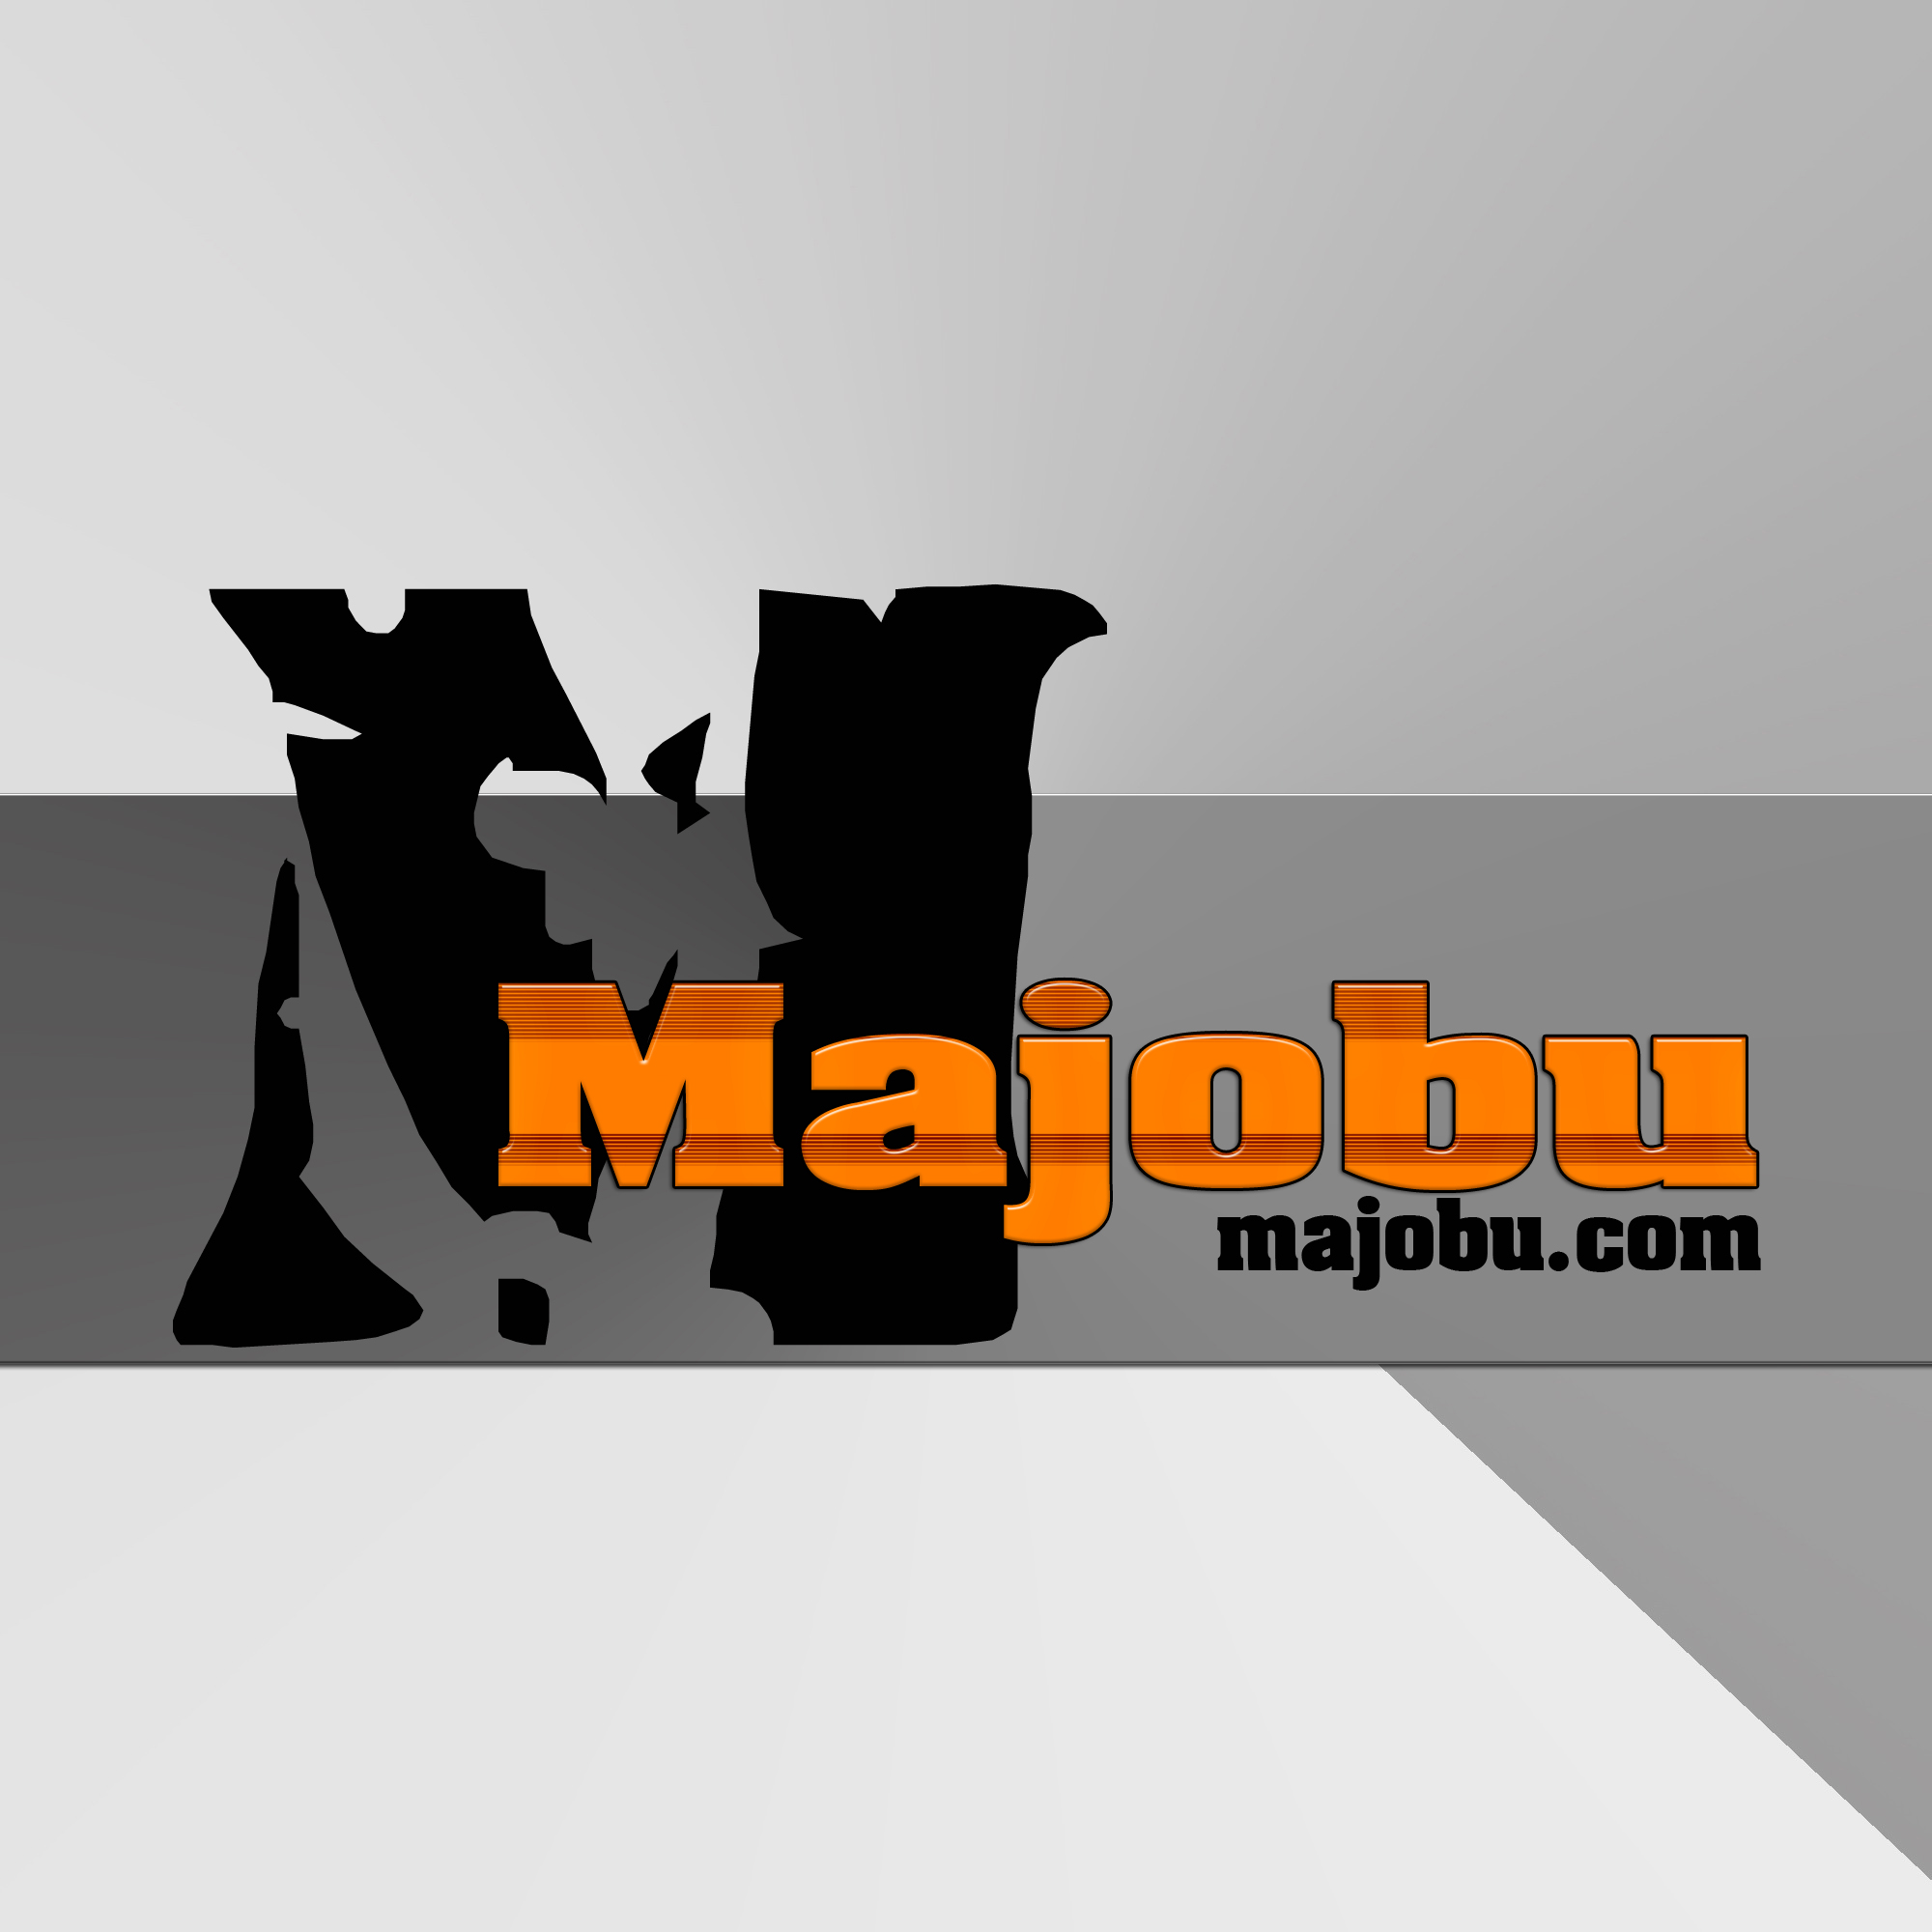 Logo Design by MITUCA ANDREI - Entry No. 146 in the Logo Design Contest Inspiring Logo Design for Majobu.